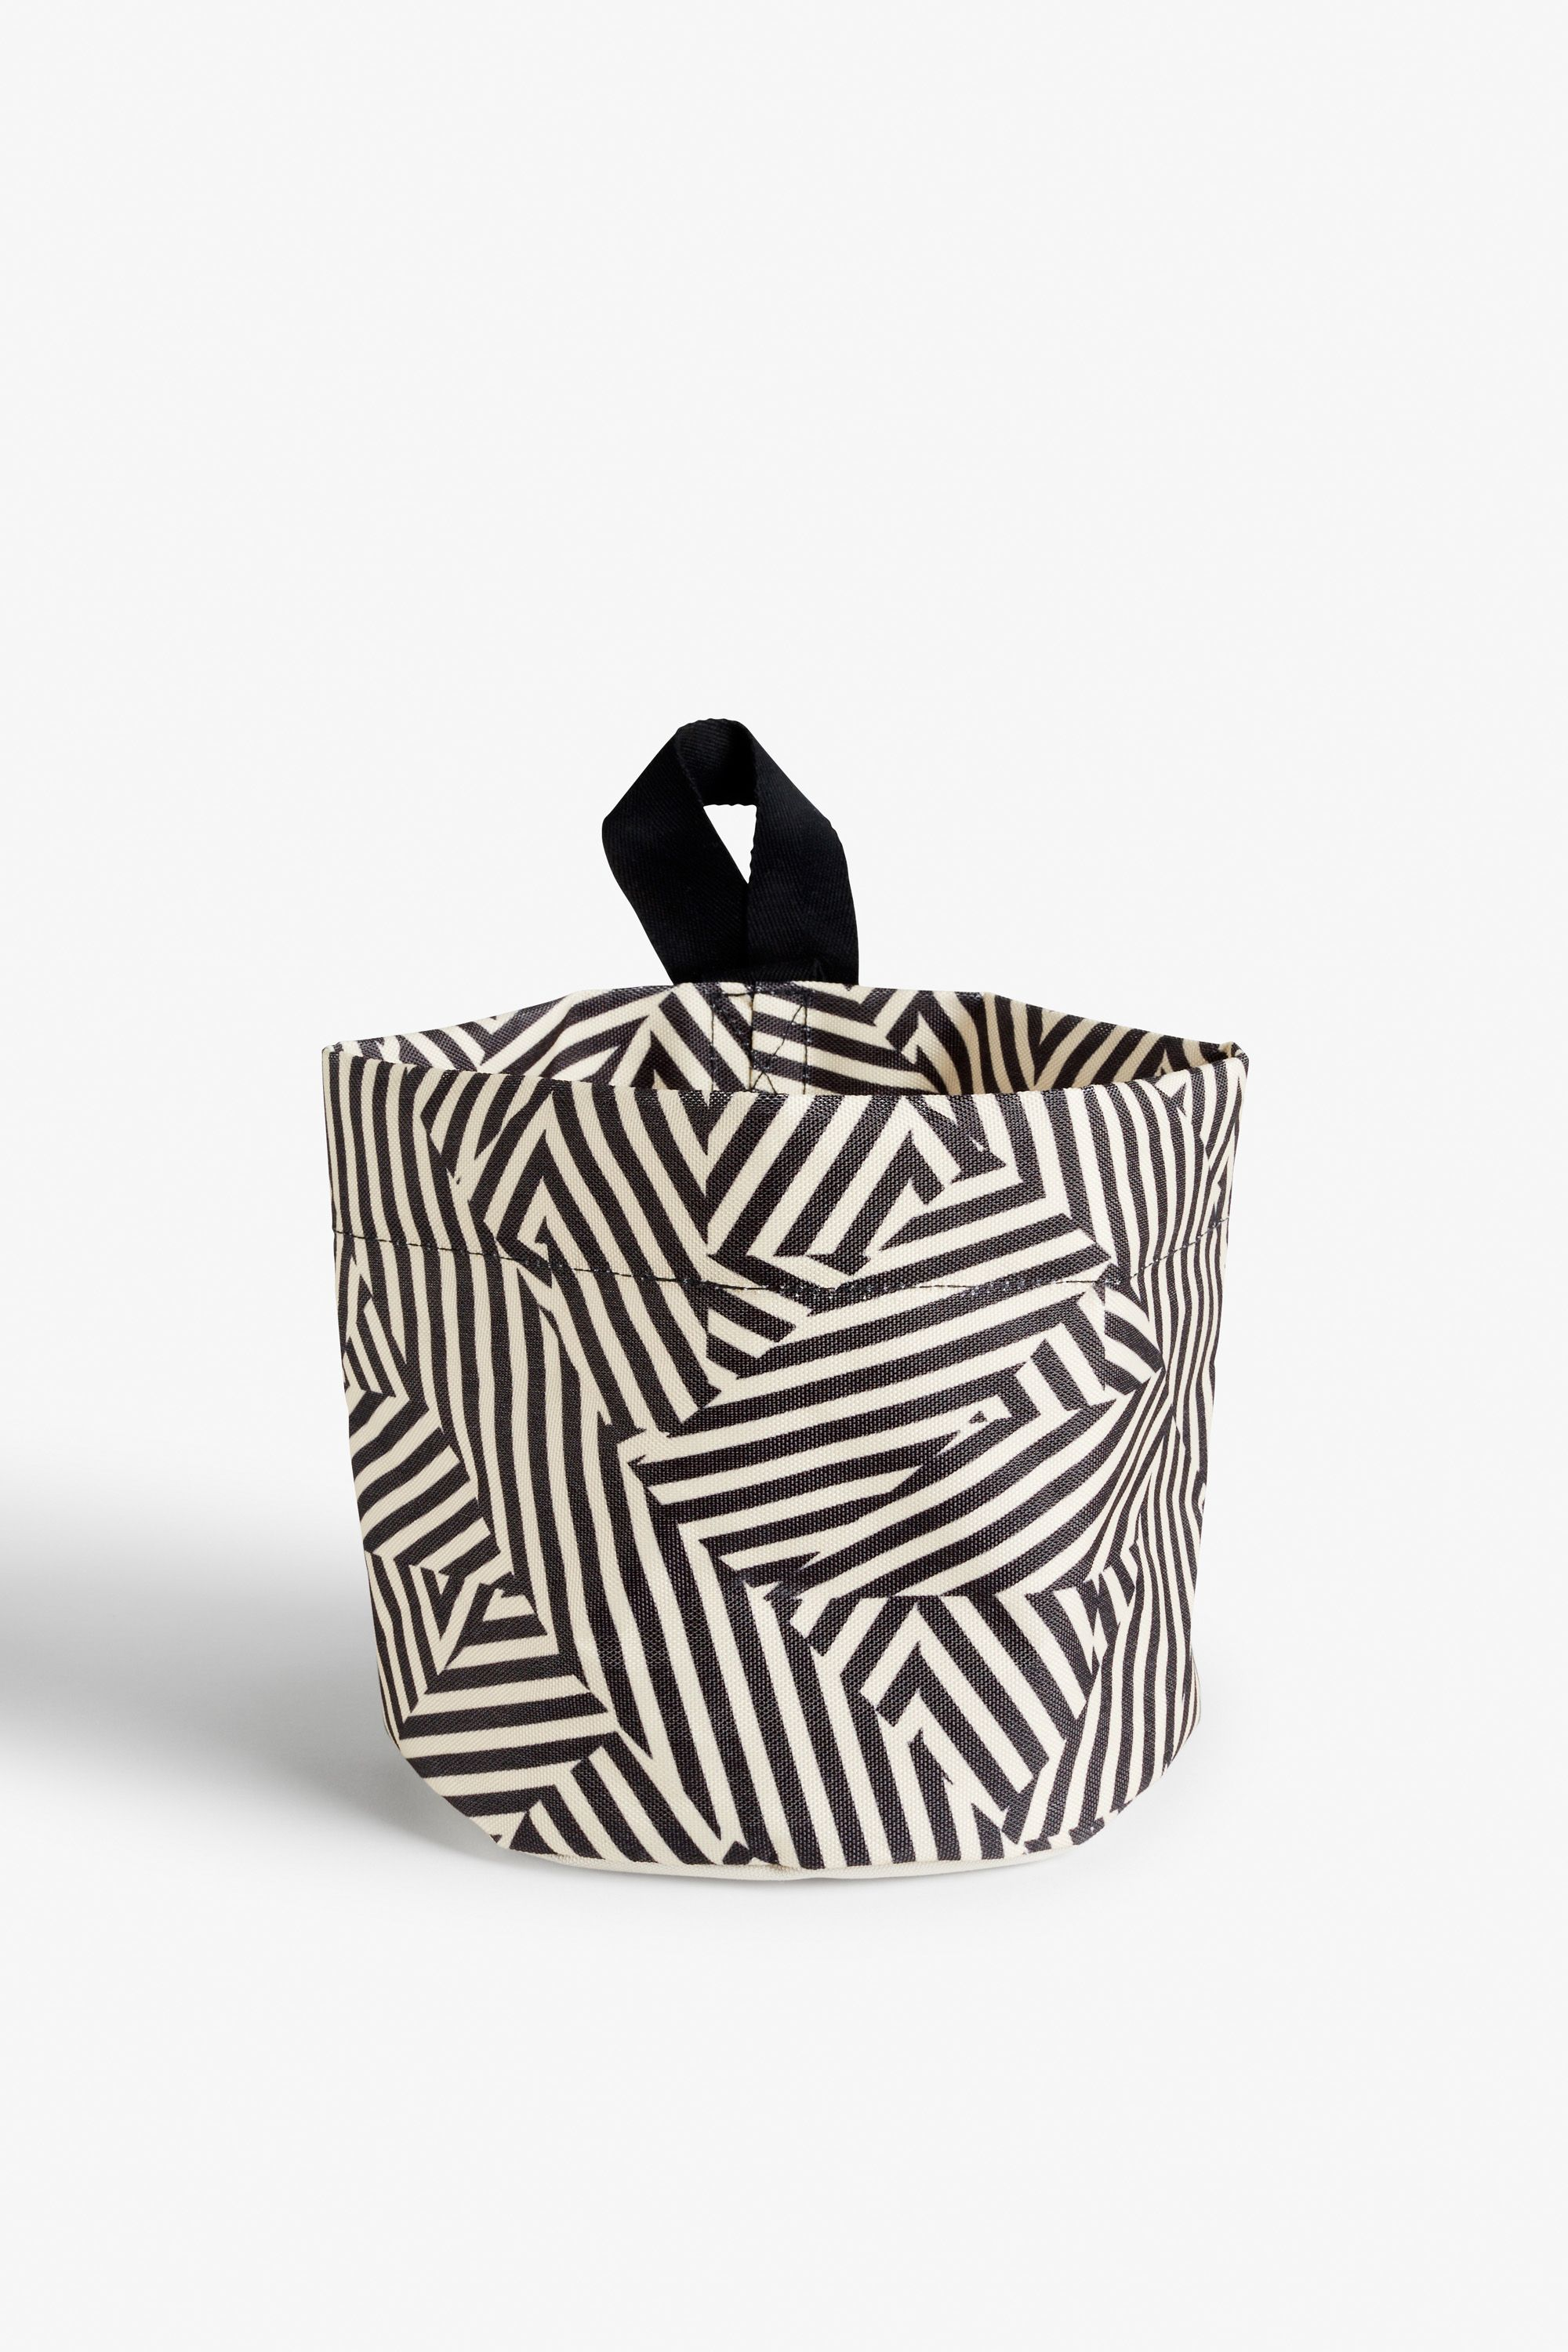 Curve your enthusiasm to this funky home wear! A hang-able basket made from laminated poly and in a print that's packing a whole lot of artsy energy. Hang it, fill it and love it!  colour: print perfection measurements: 18 * 20 cm